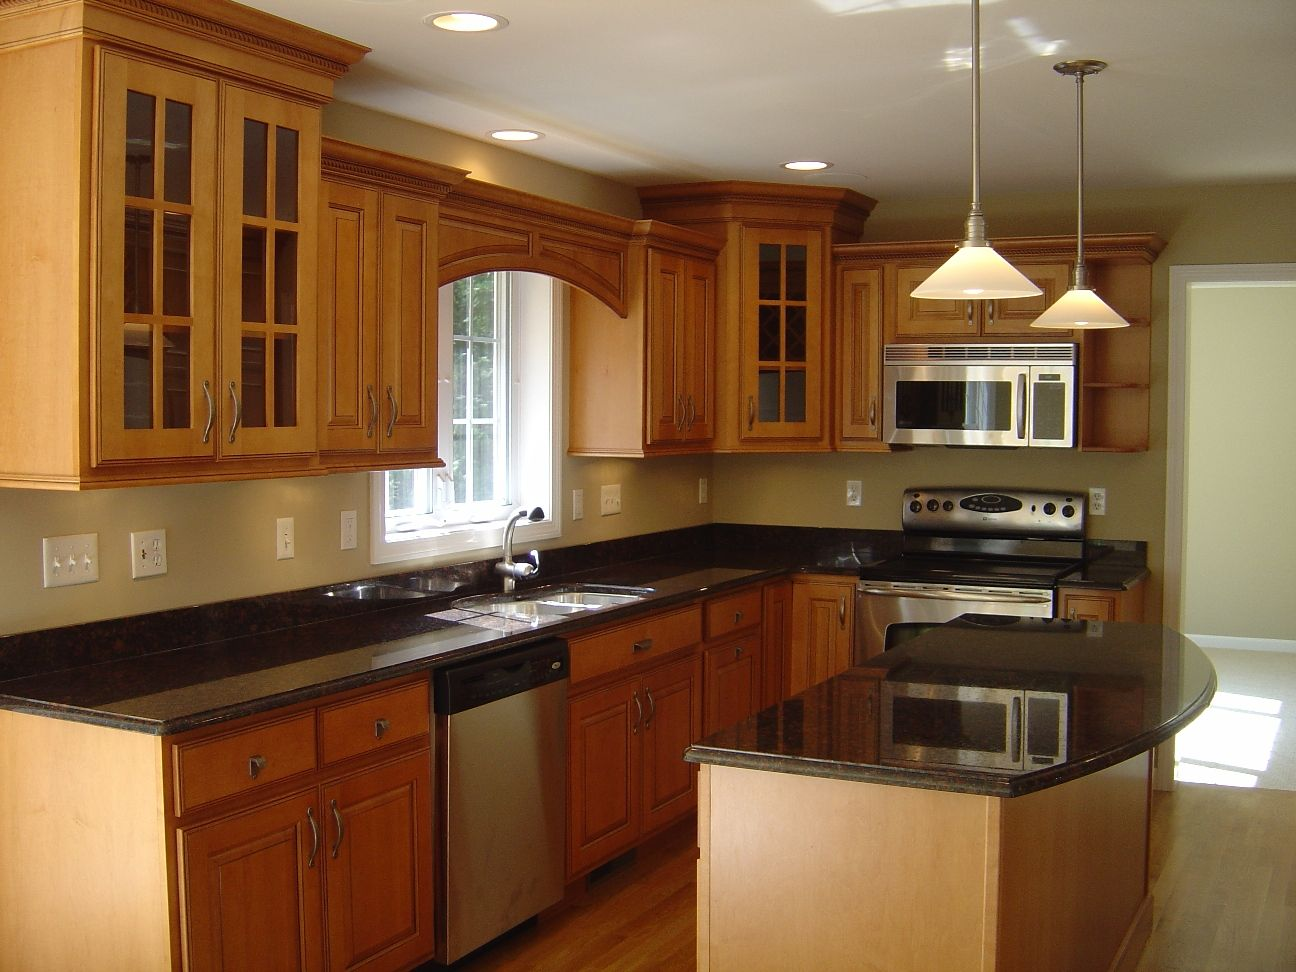 Uncategorized Kitchen Ideas Design small kitchen remodeling ideas bathroom design styles amp remodel in nyc